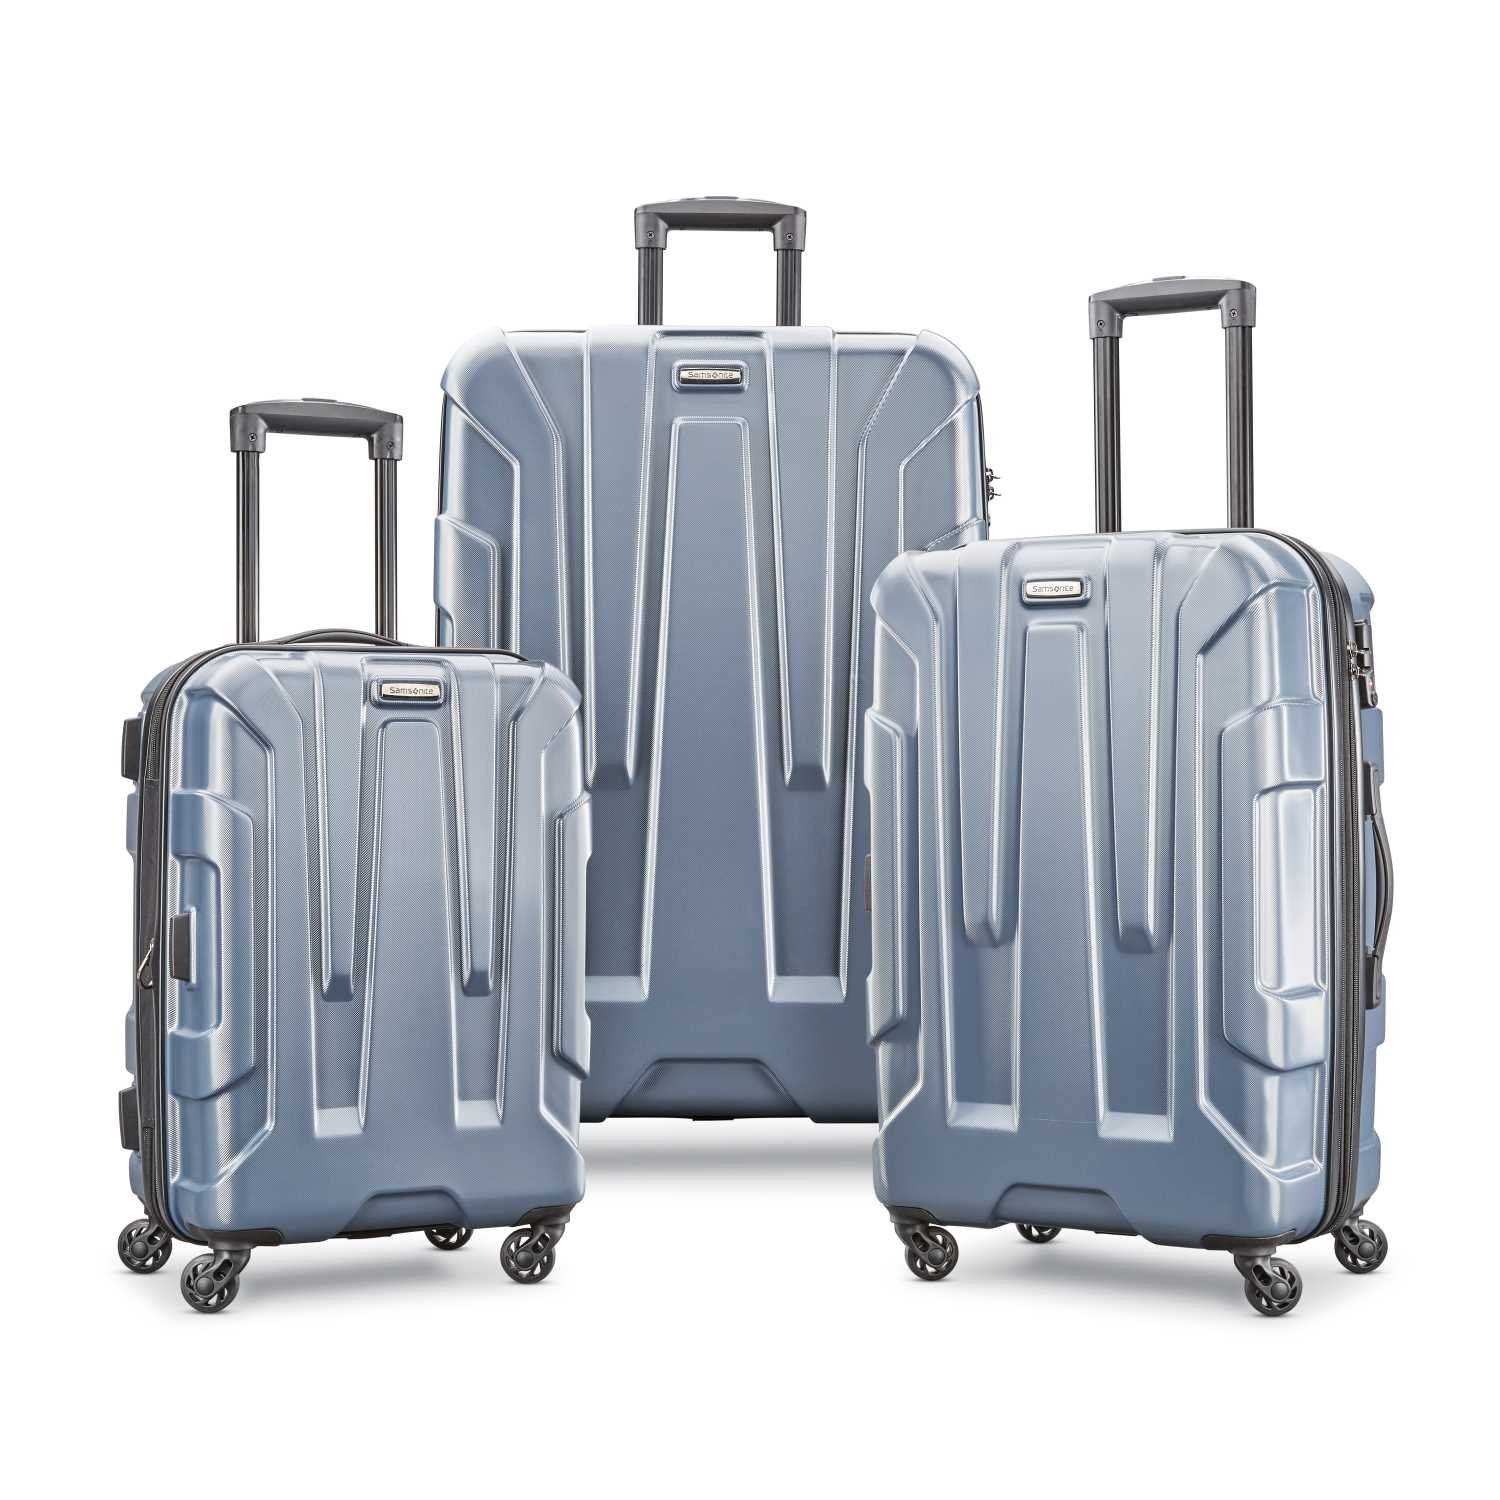 Best Luggage Brands 2020.The Ultimate Guide To Buying The Best Luggage Sets 2020